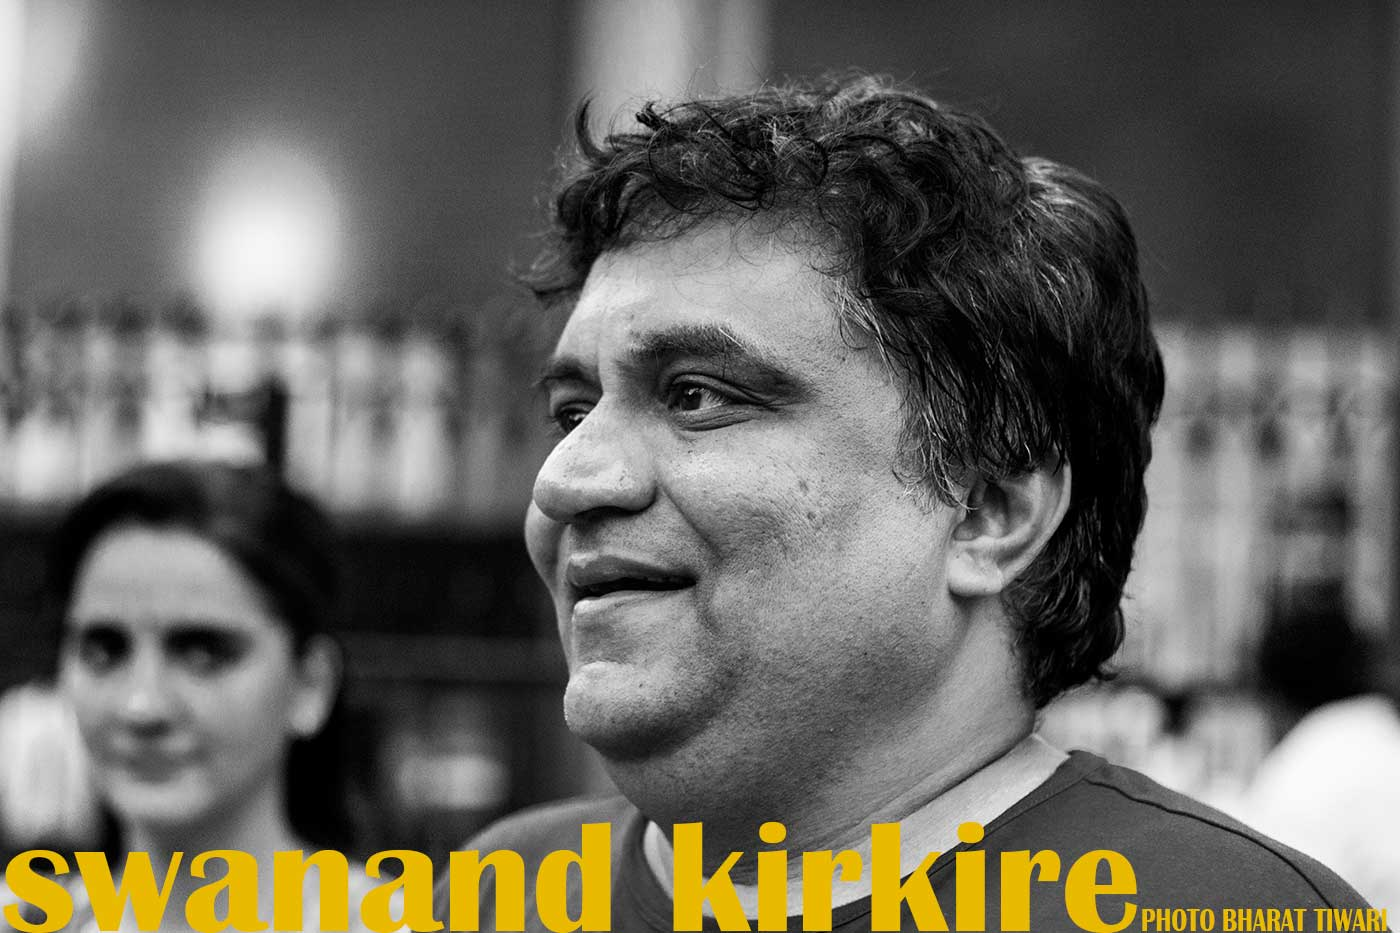 Swanand Kirkire has a career that spans many of the creative arts, though he may most famously be known as a lyricist, having won the National Film Award for Best Lyrics twice, with his most famous song Bawra mann dekhne chala ek sapna. His career started in the theatre, directing before moving into writing for television and eventually acting in films including Crazy Cukkad Family, and theatre.